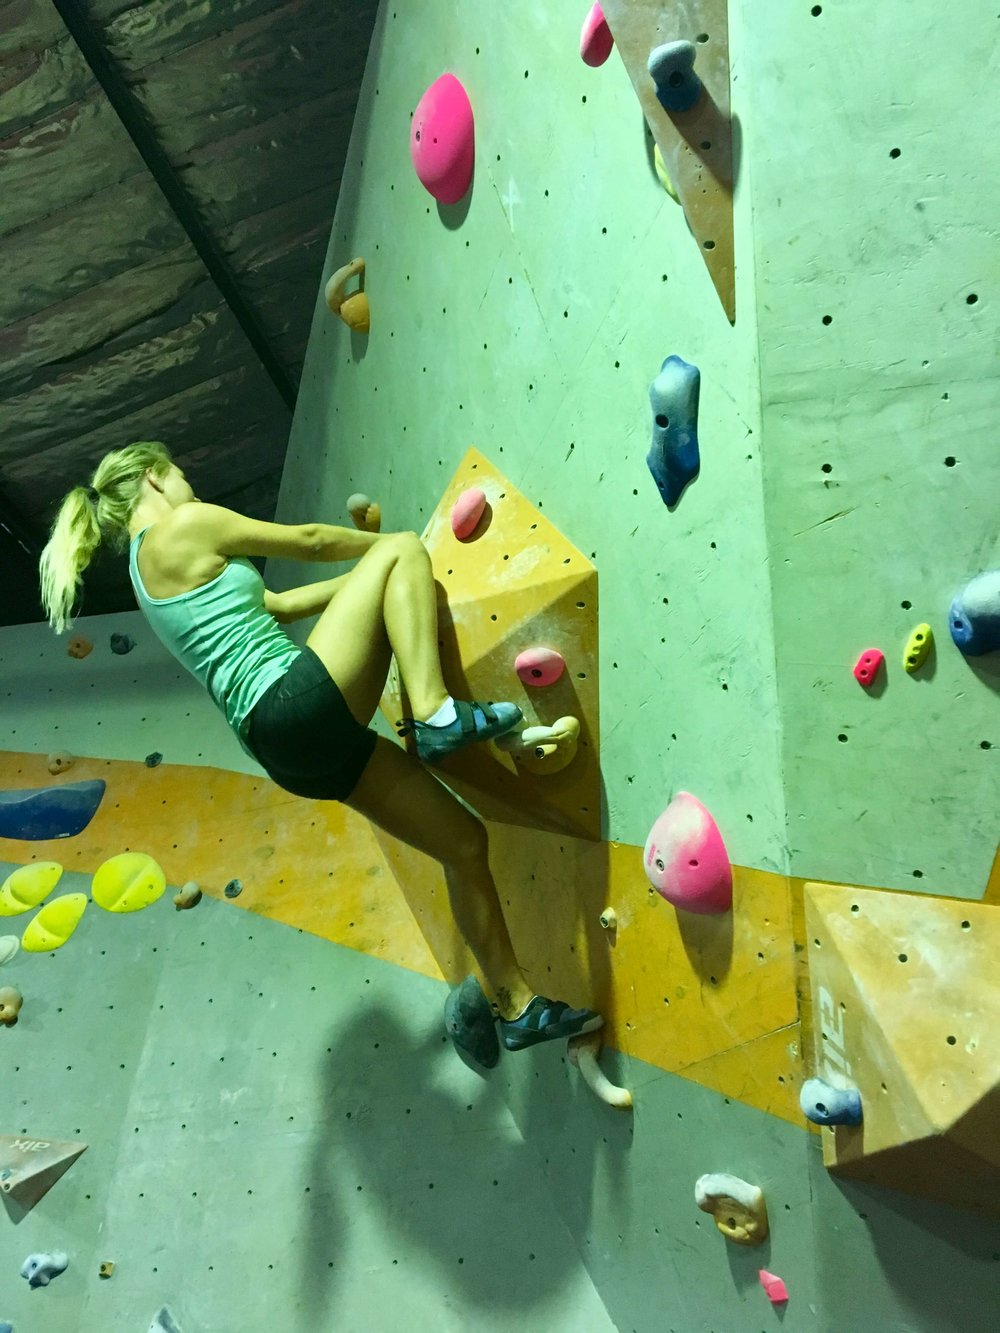 Rock climbing is one of those sports where it really is YOU versus YOURSELF. It pushes you and makes you stop thinking about getting approval for others.